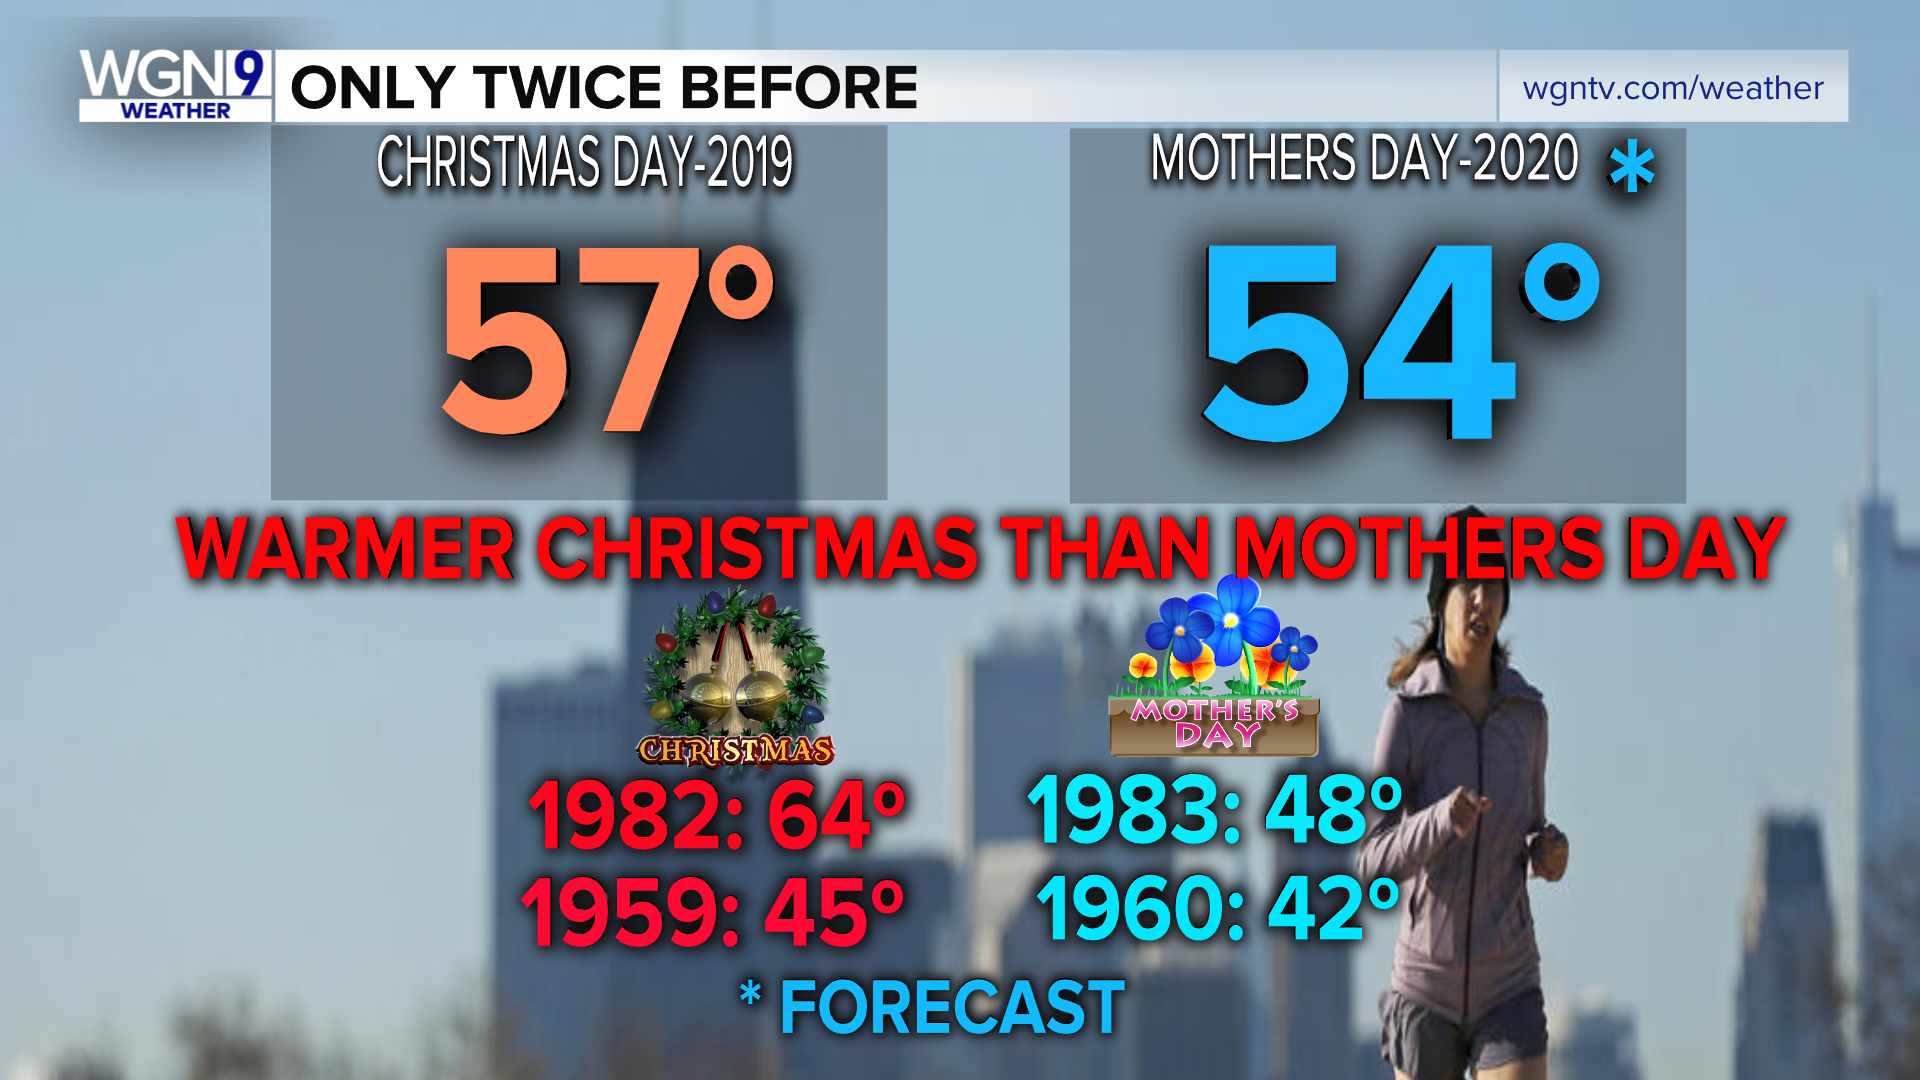 It will be colder on Mother's Day than it was on Christmas | WGN TV